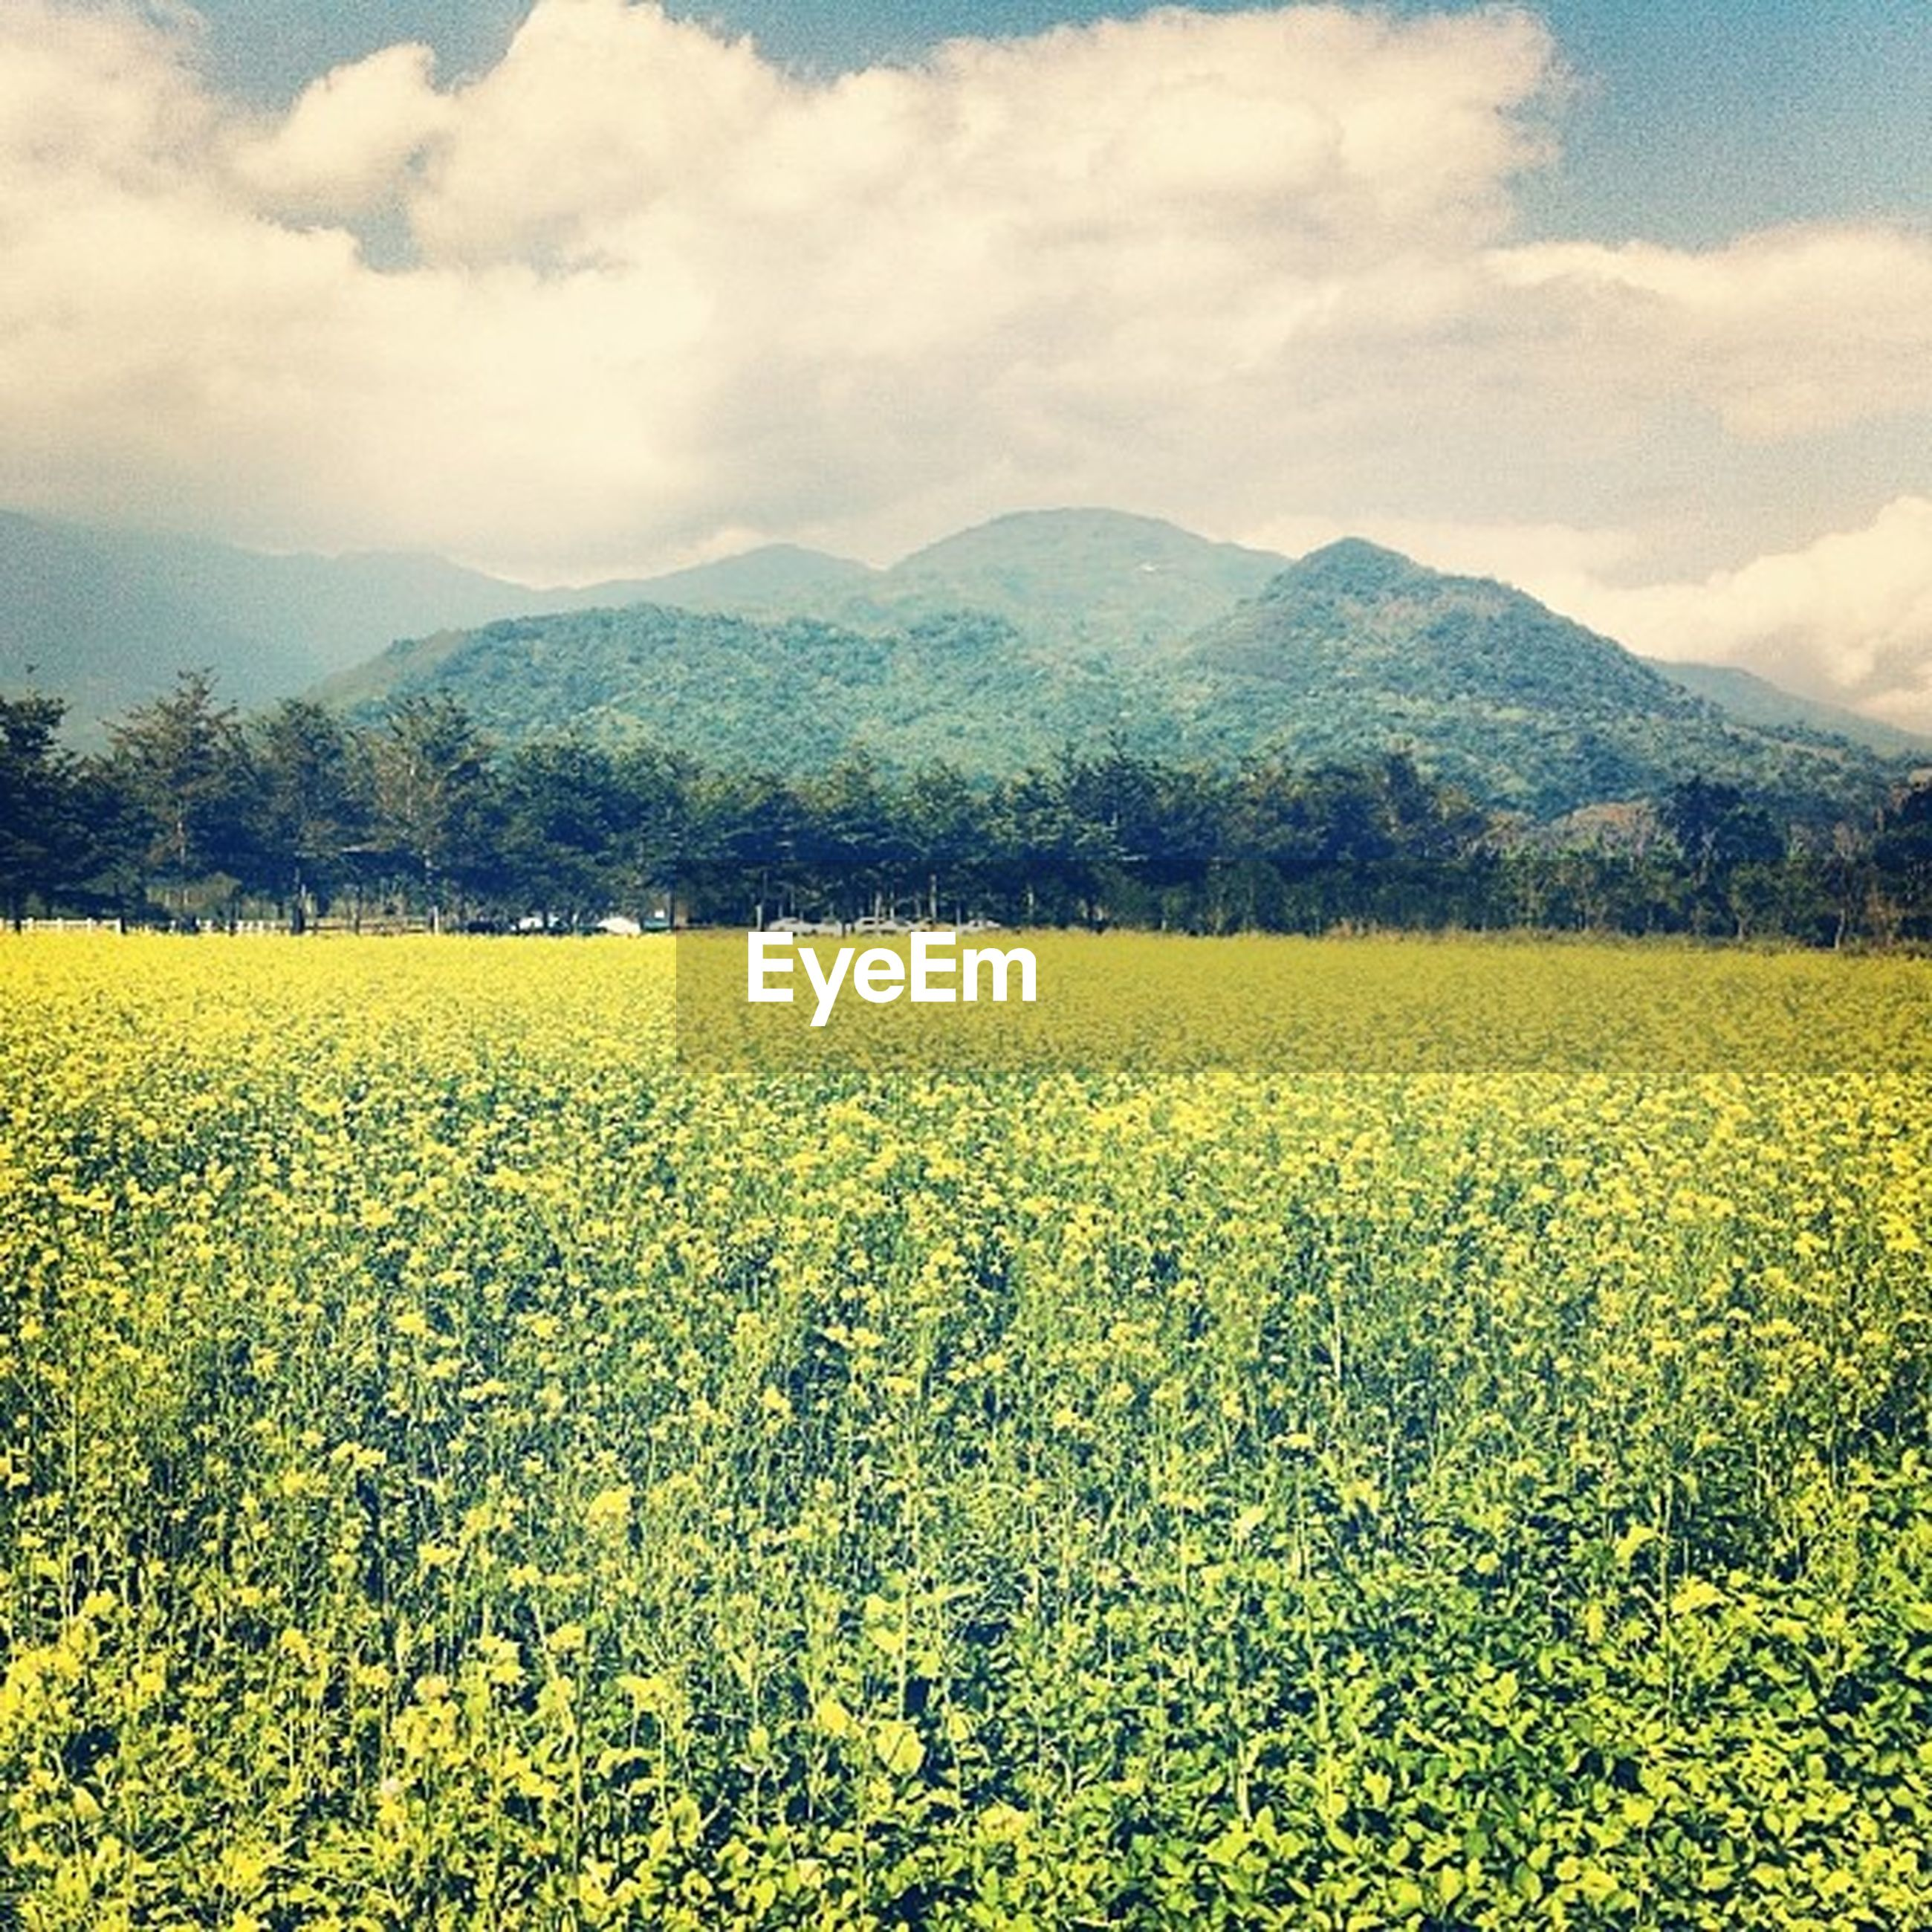 flower, yellow, beauty in nature, agriculture, rural scene, field, landscape, growth, tranquil scene, sky, nature, scenics, freshness, tranquility, farm, abundance, crop, cloud - sky, oilseed rape, mountain